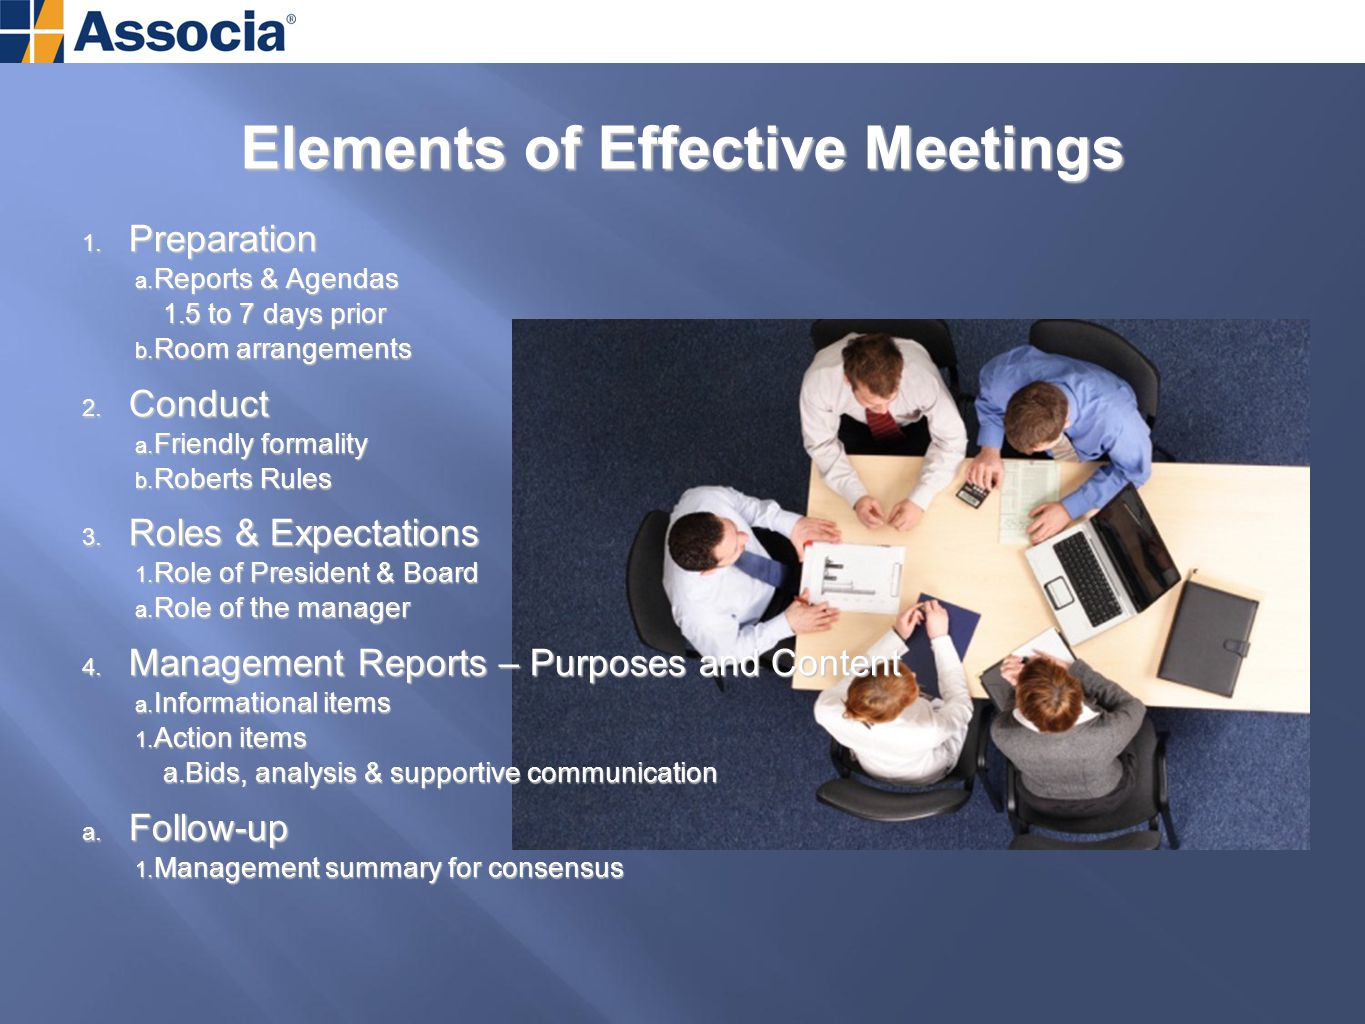 Elements of Effective Meetings 1. Preparation a. Reports & Agendas 1.